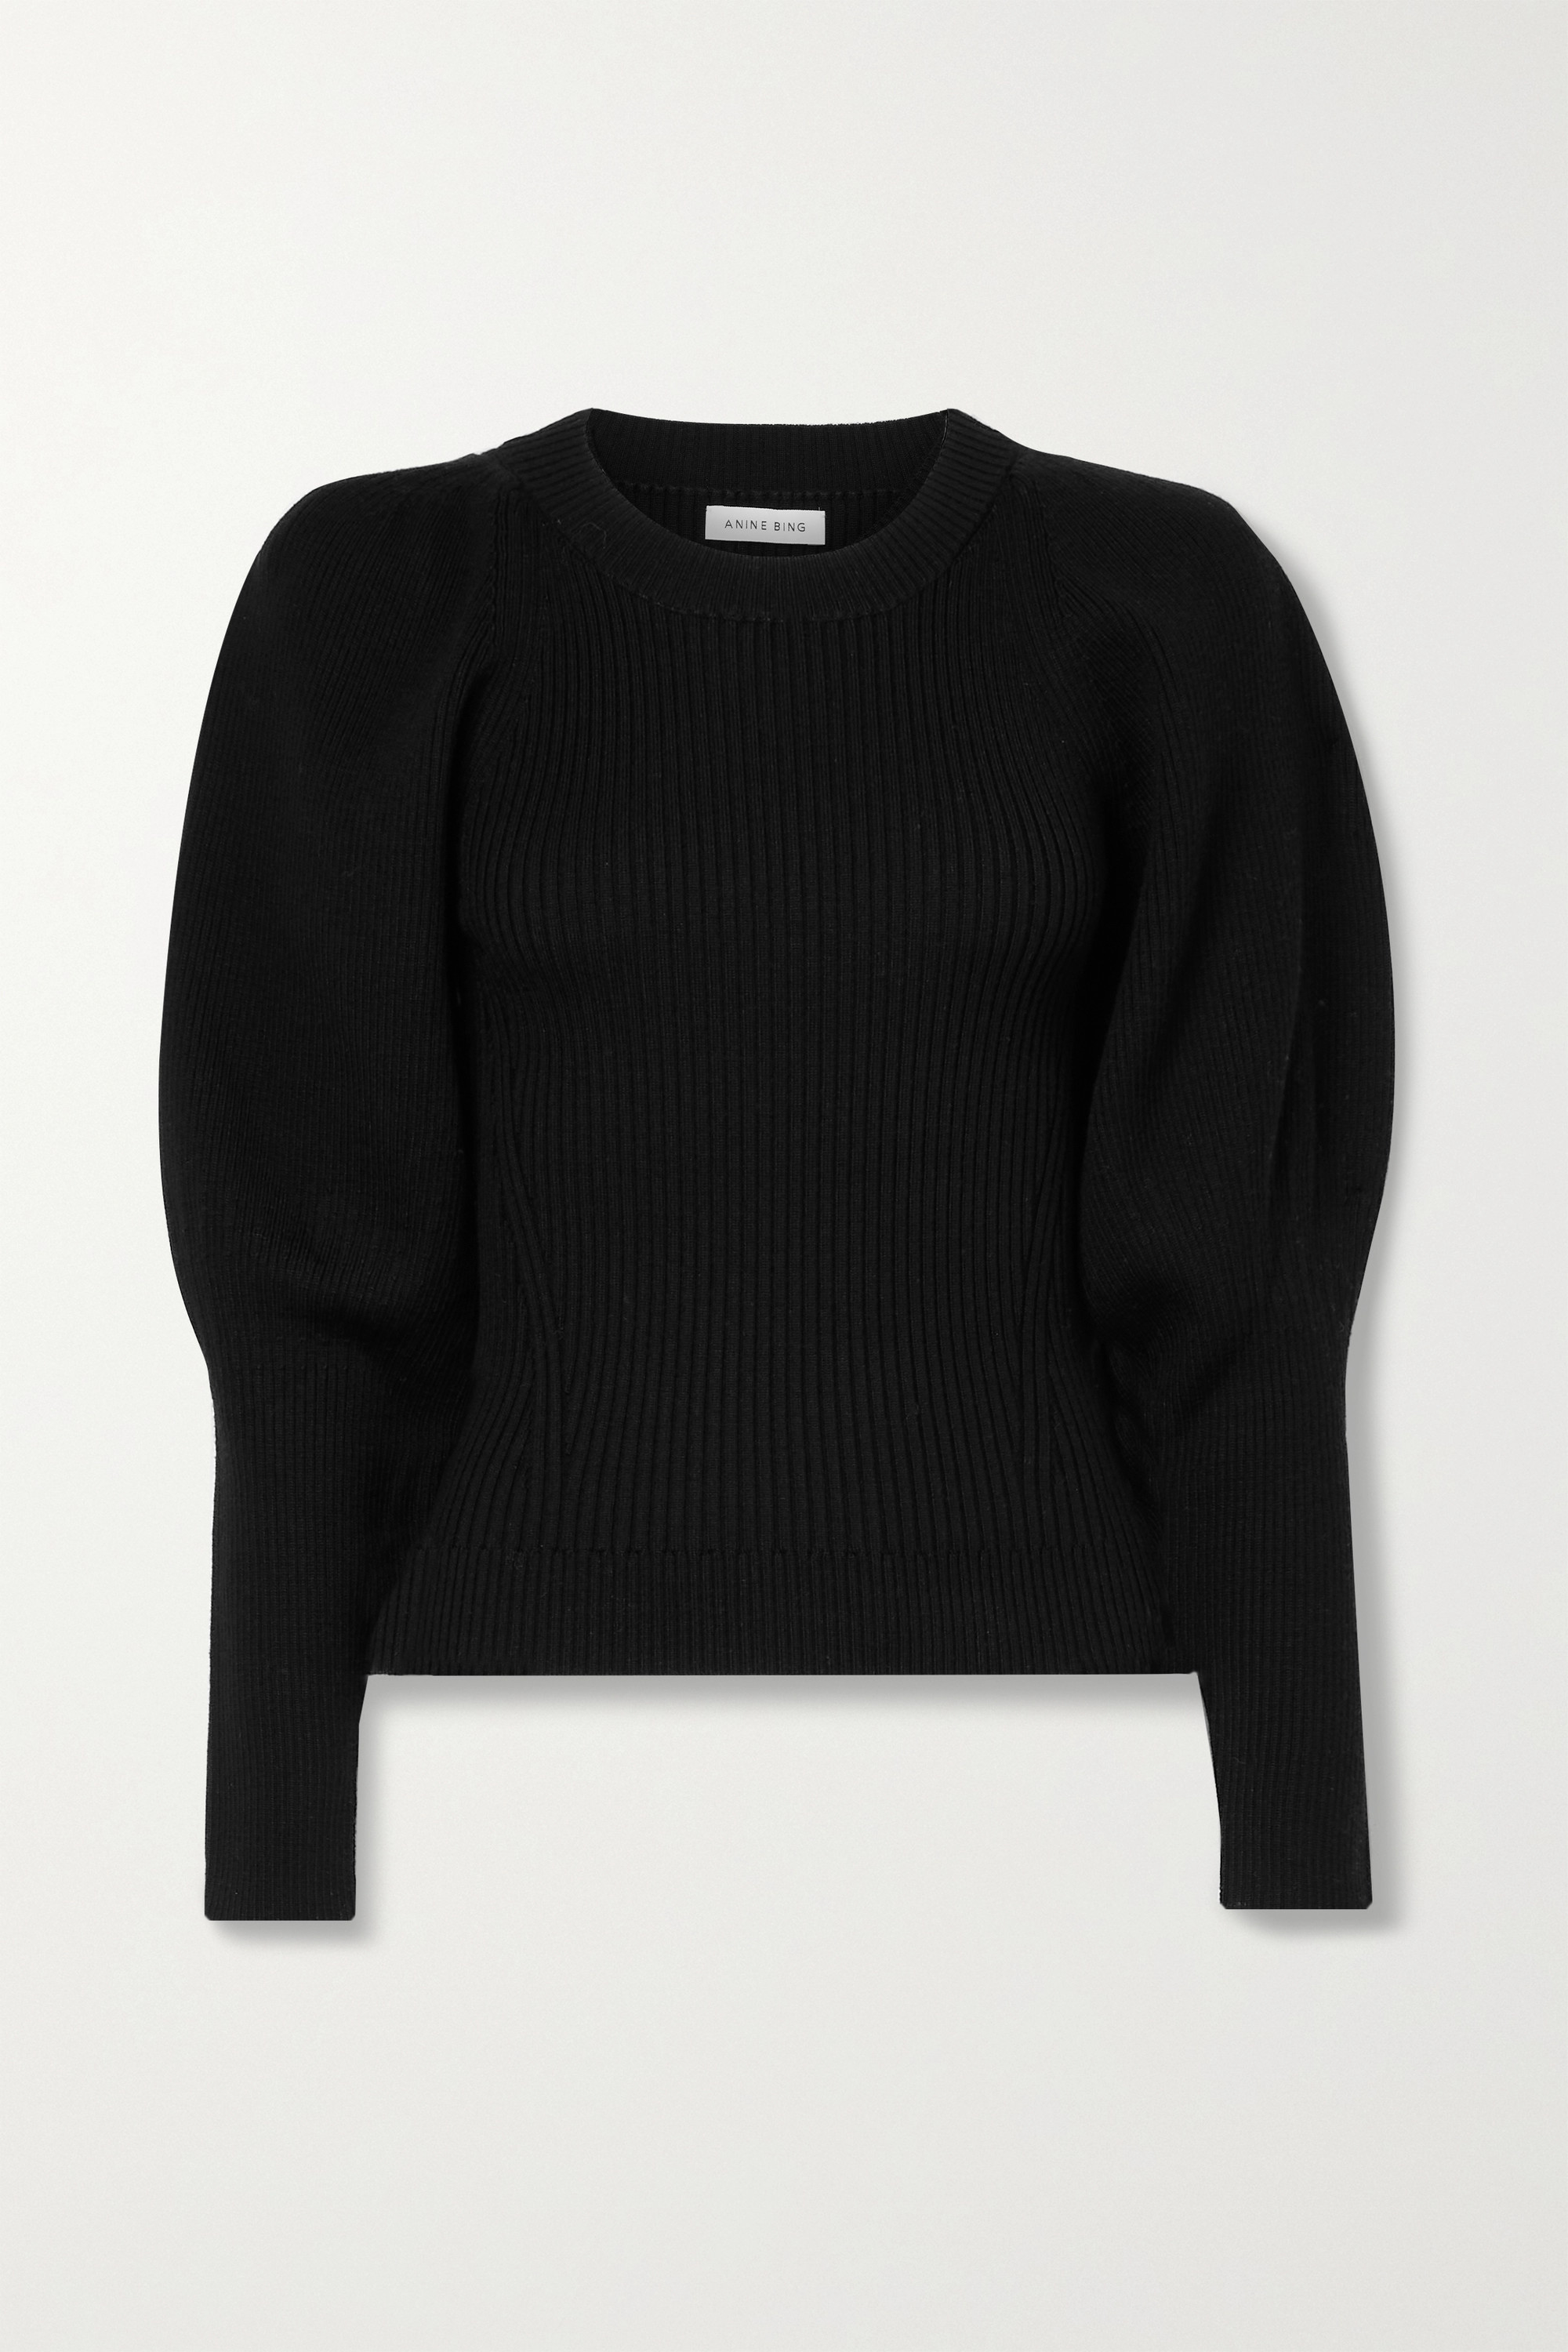 ANINE BING Rowan ribbed wool sweater